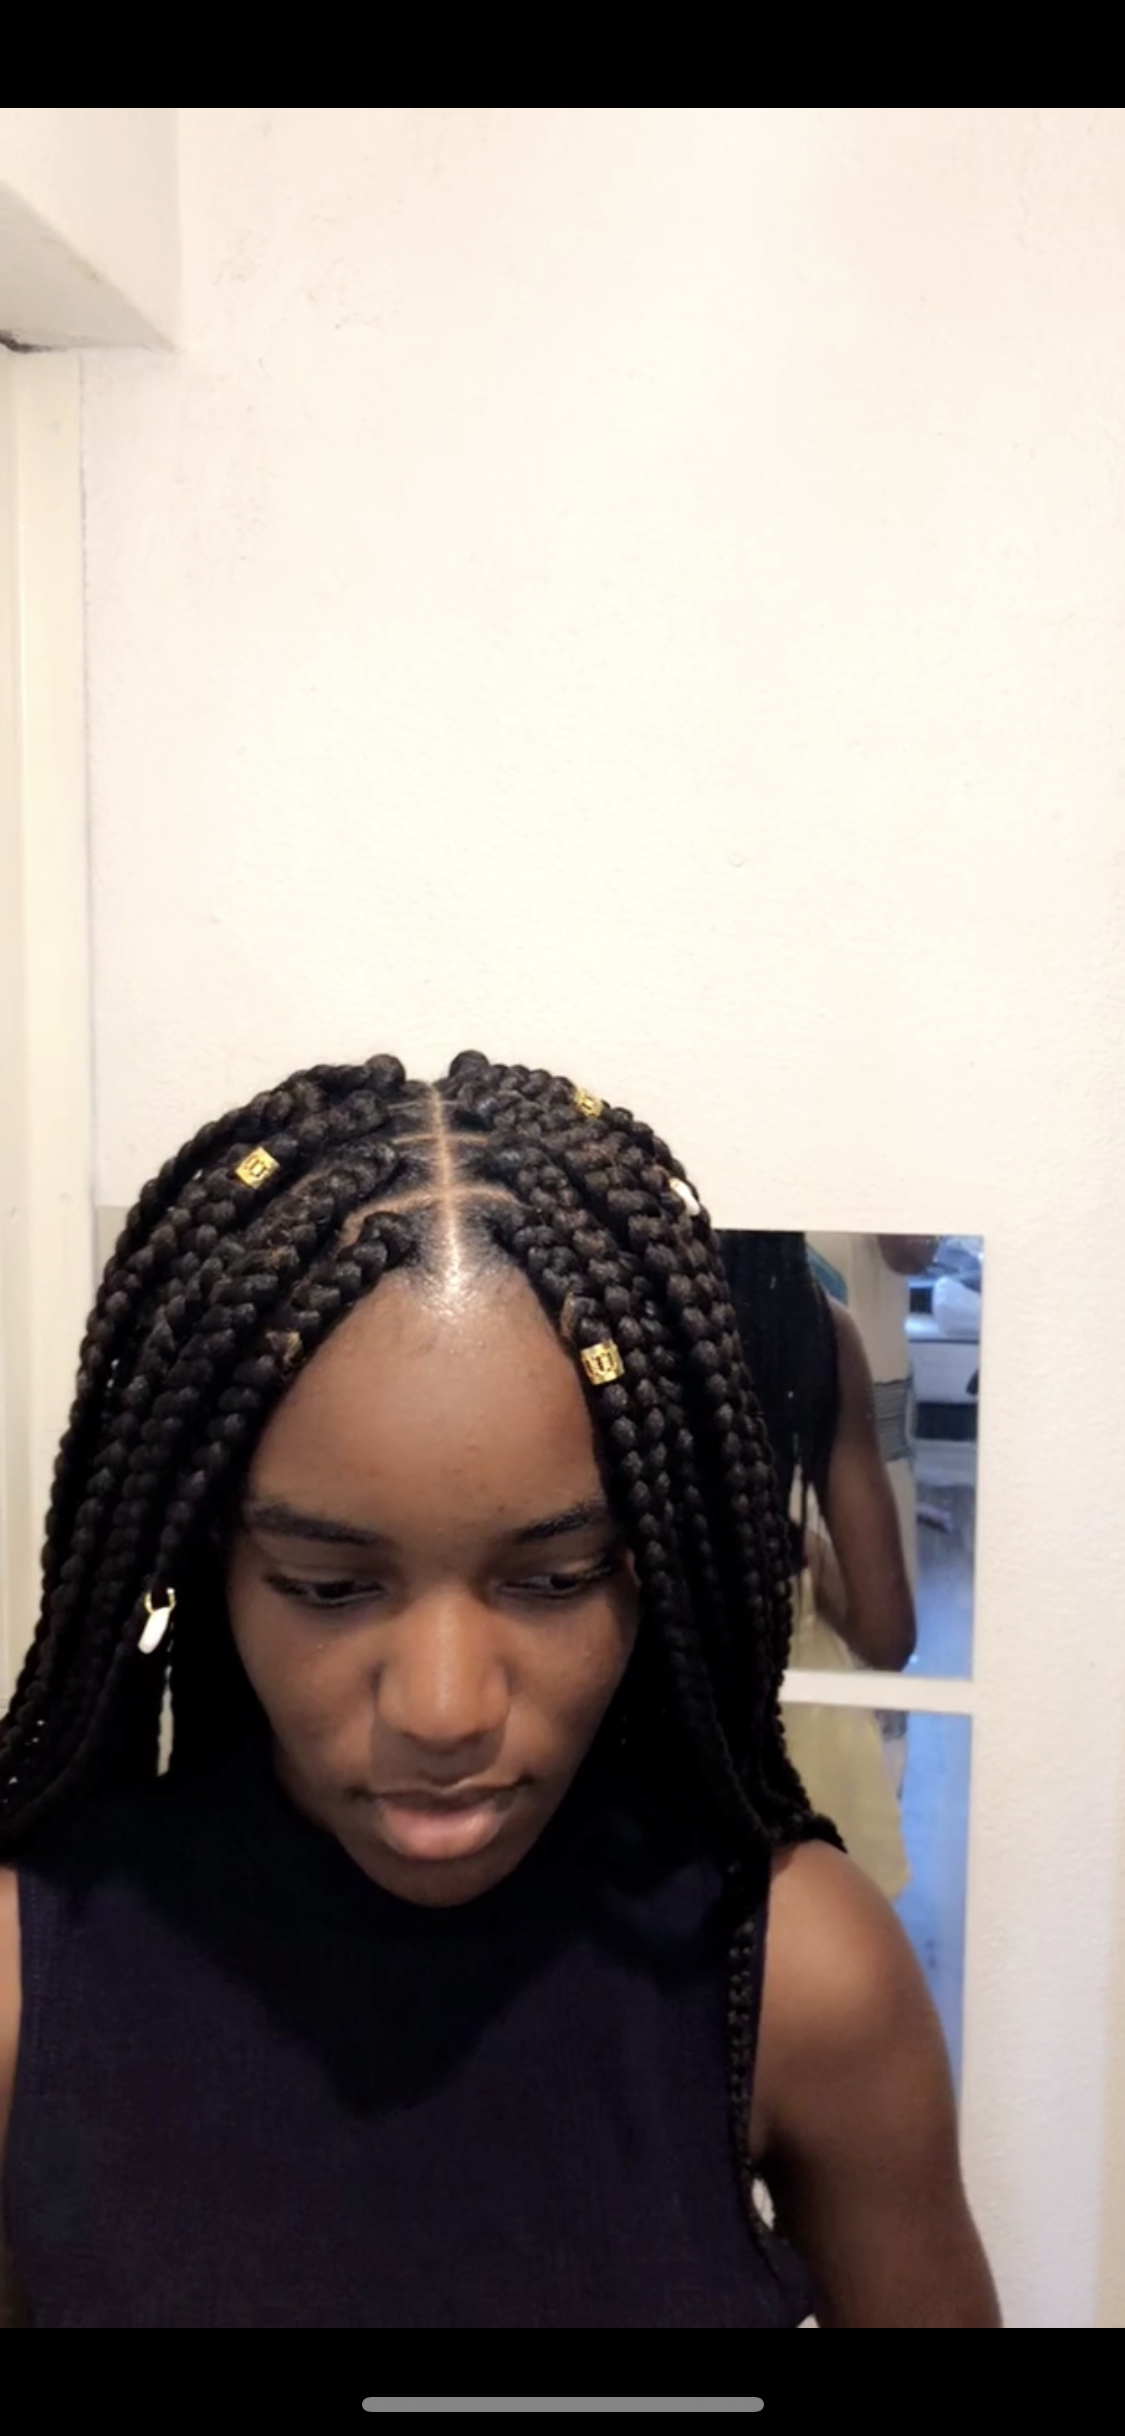 salon de coiffure afro tresse tresses box braids crochet braids vanilles tissages paris 75 77 78 91 92 93 94 95 RKLRNPIX